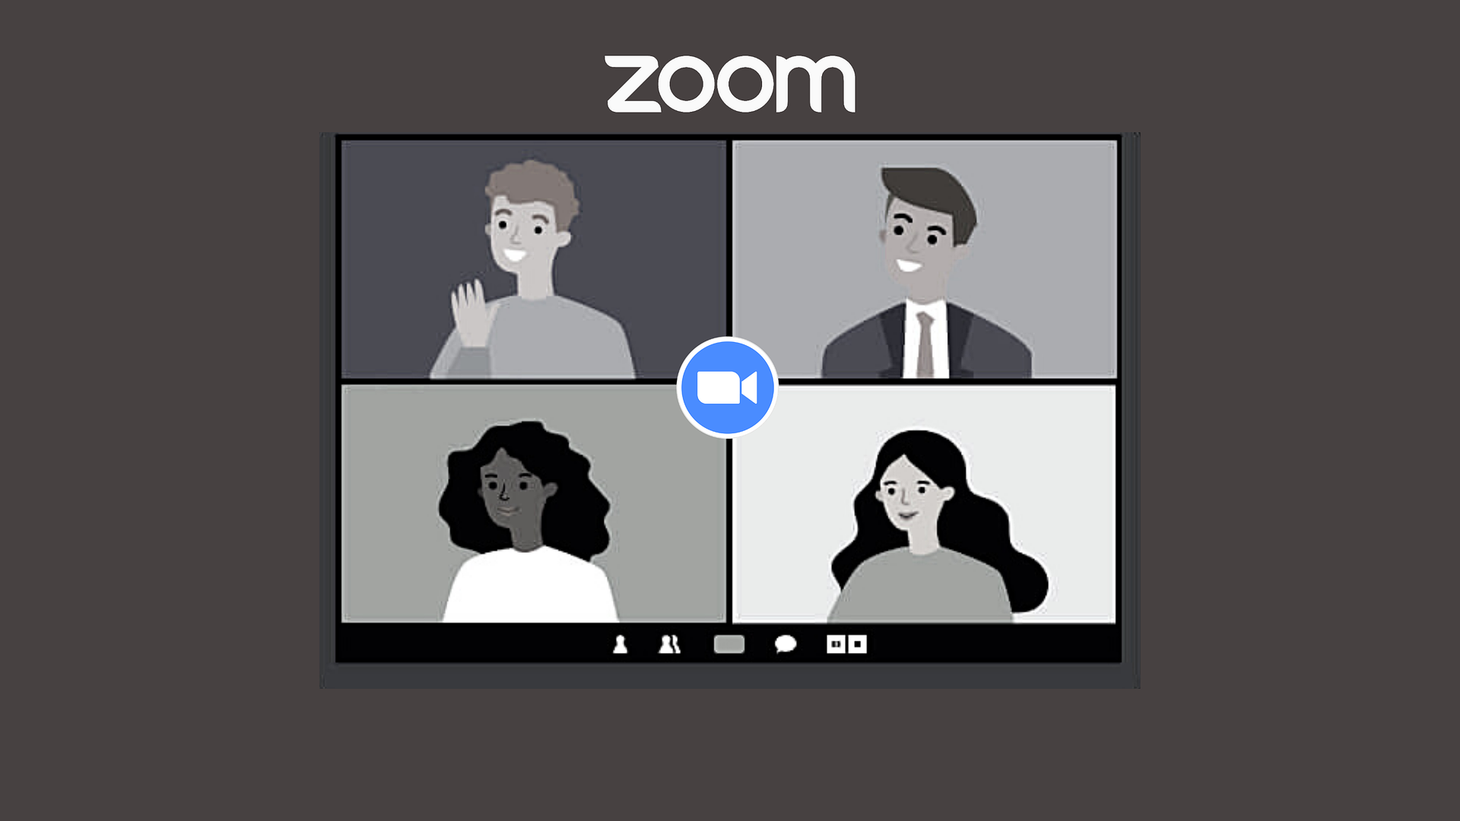 Videoconferencing can make you feel socially fatigued (you don't want to see other people), emotionally fatigued (you just feel sad), and/or physically fatigued (your eyes hurt). That's according to Jeremy Bailenson, founding director of Stanford University's Virtual Human Interaction Lab.